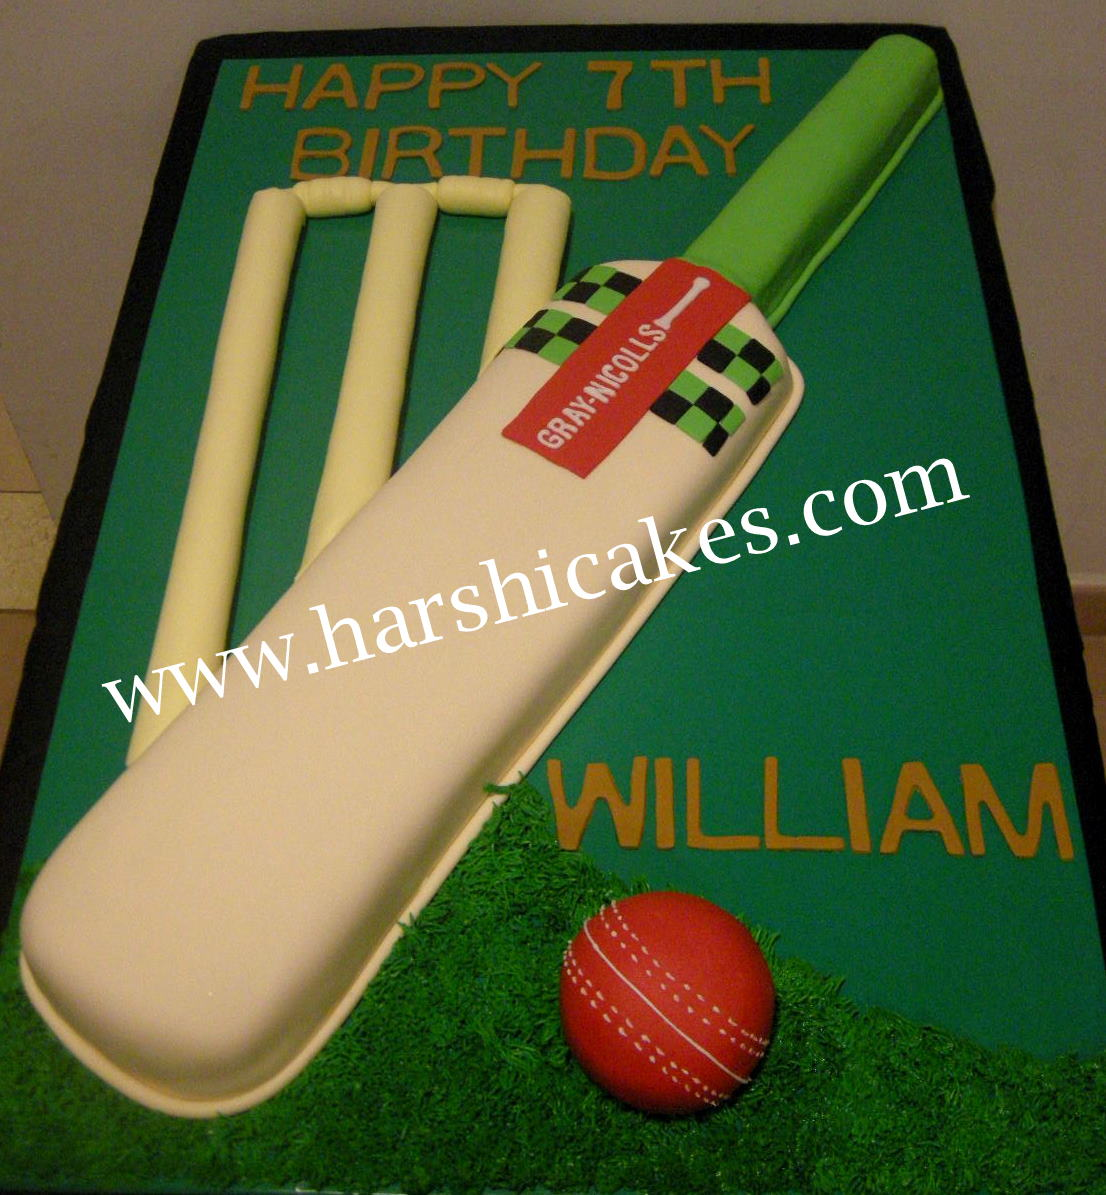 Cricket Theme Cake For William